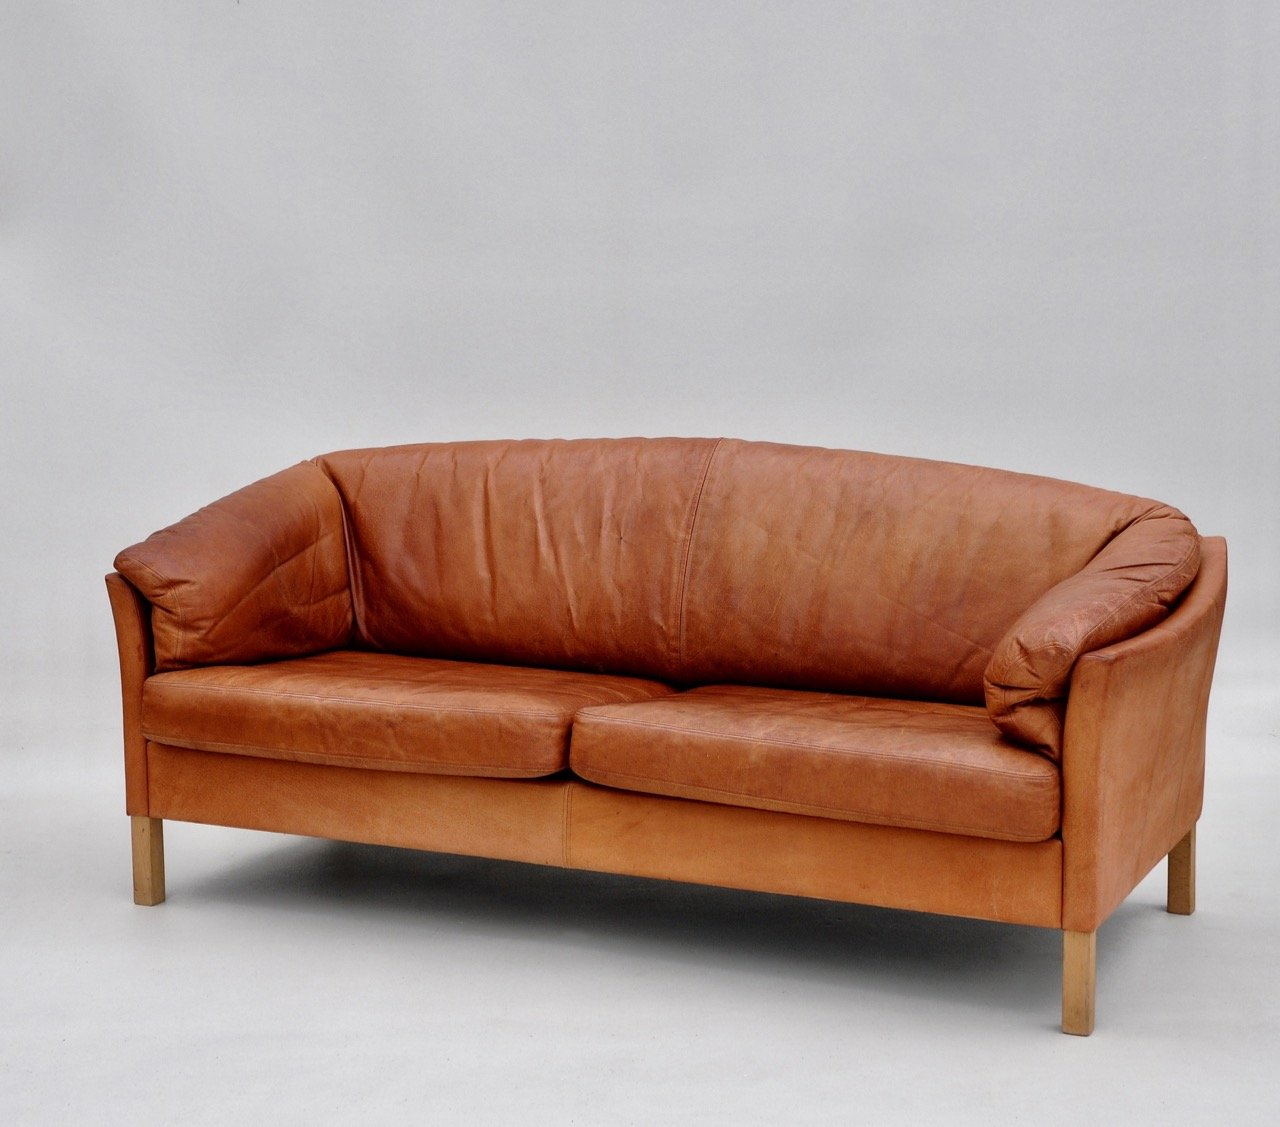 Vintage danish light tan leather sofa by mogens hansen for for Tan couches for sale